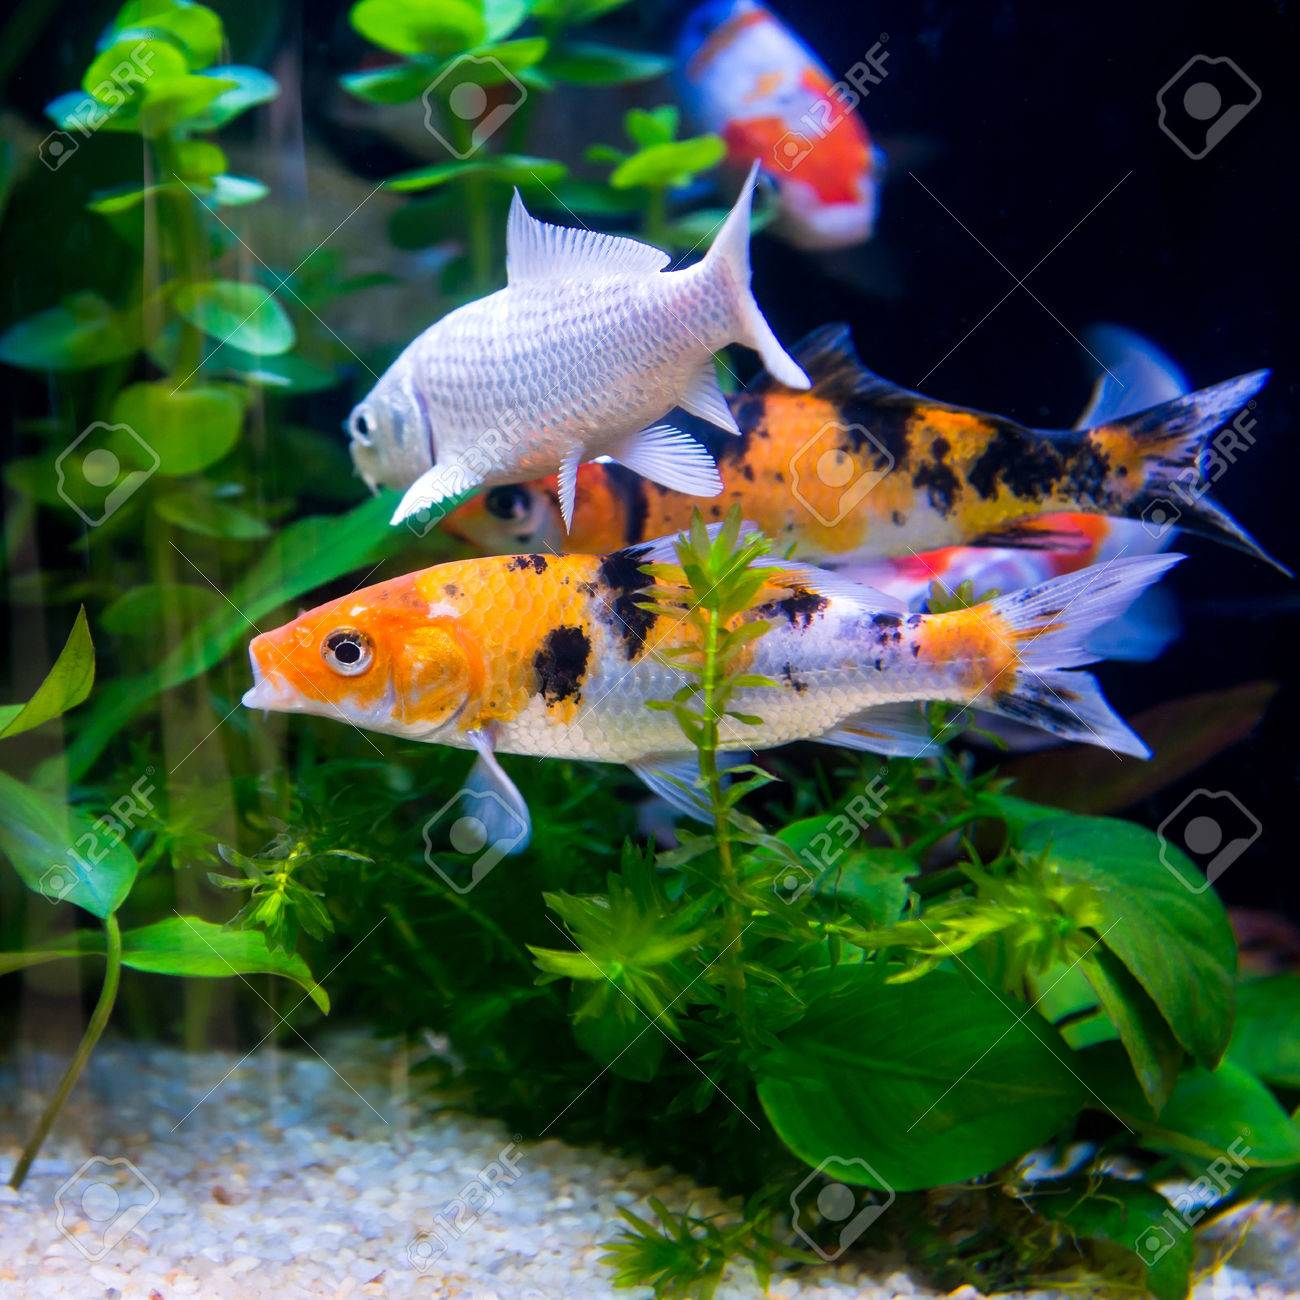 Freshwater fish koi - Stock Photo The Colorful Koi Fishes Or Golden Fish Swim Carefree In The Aquarium